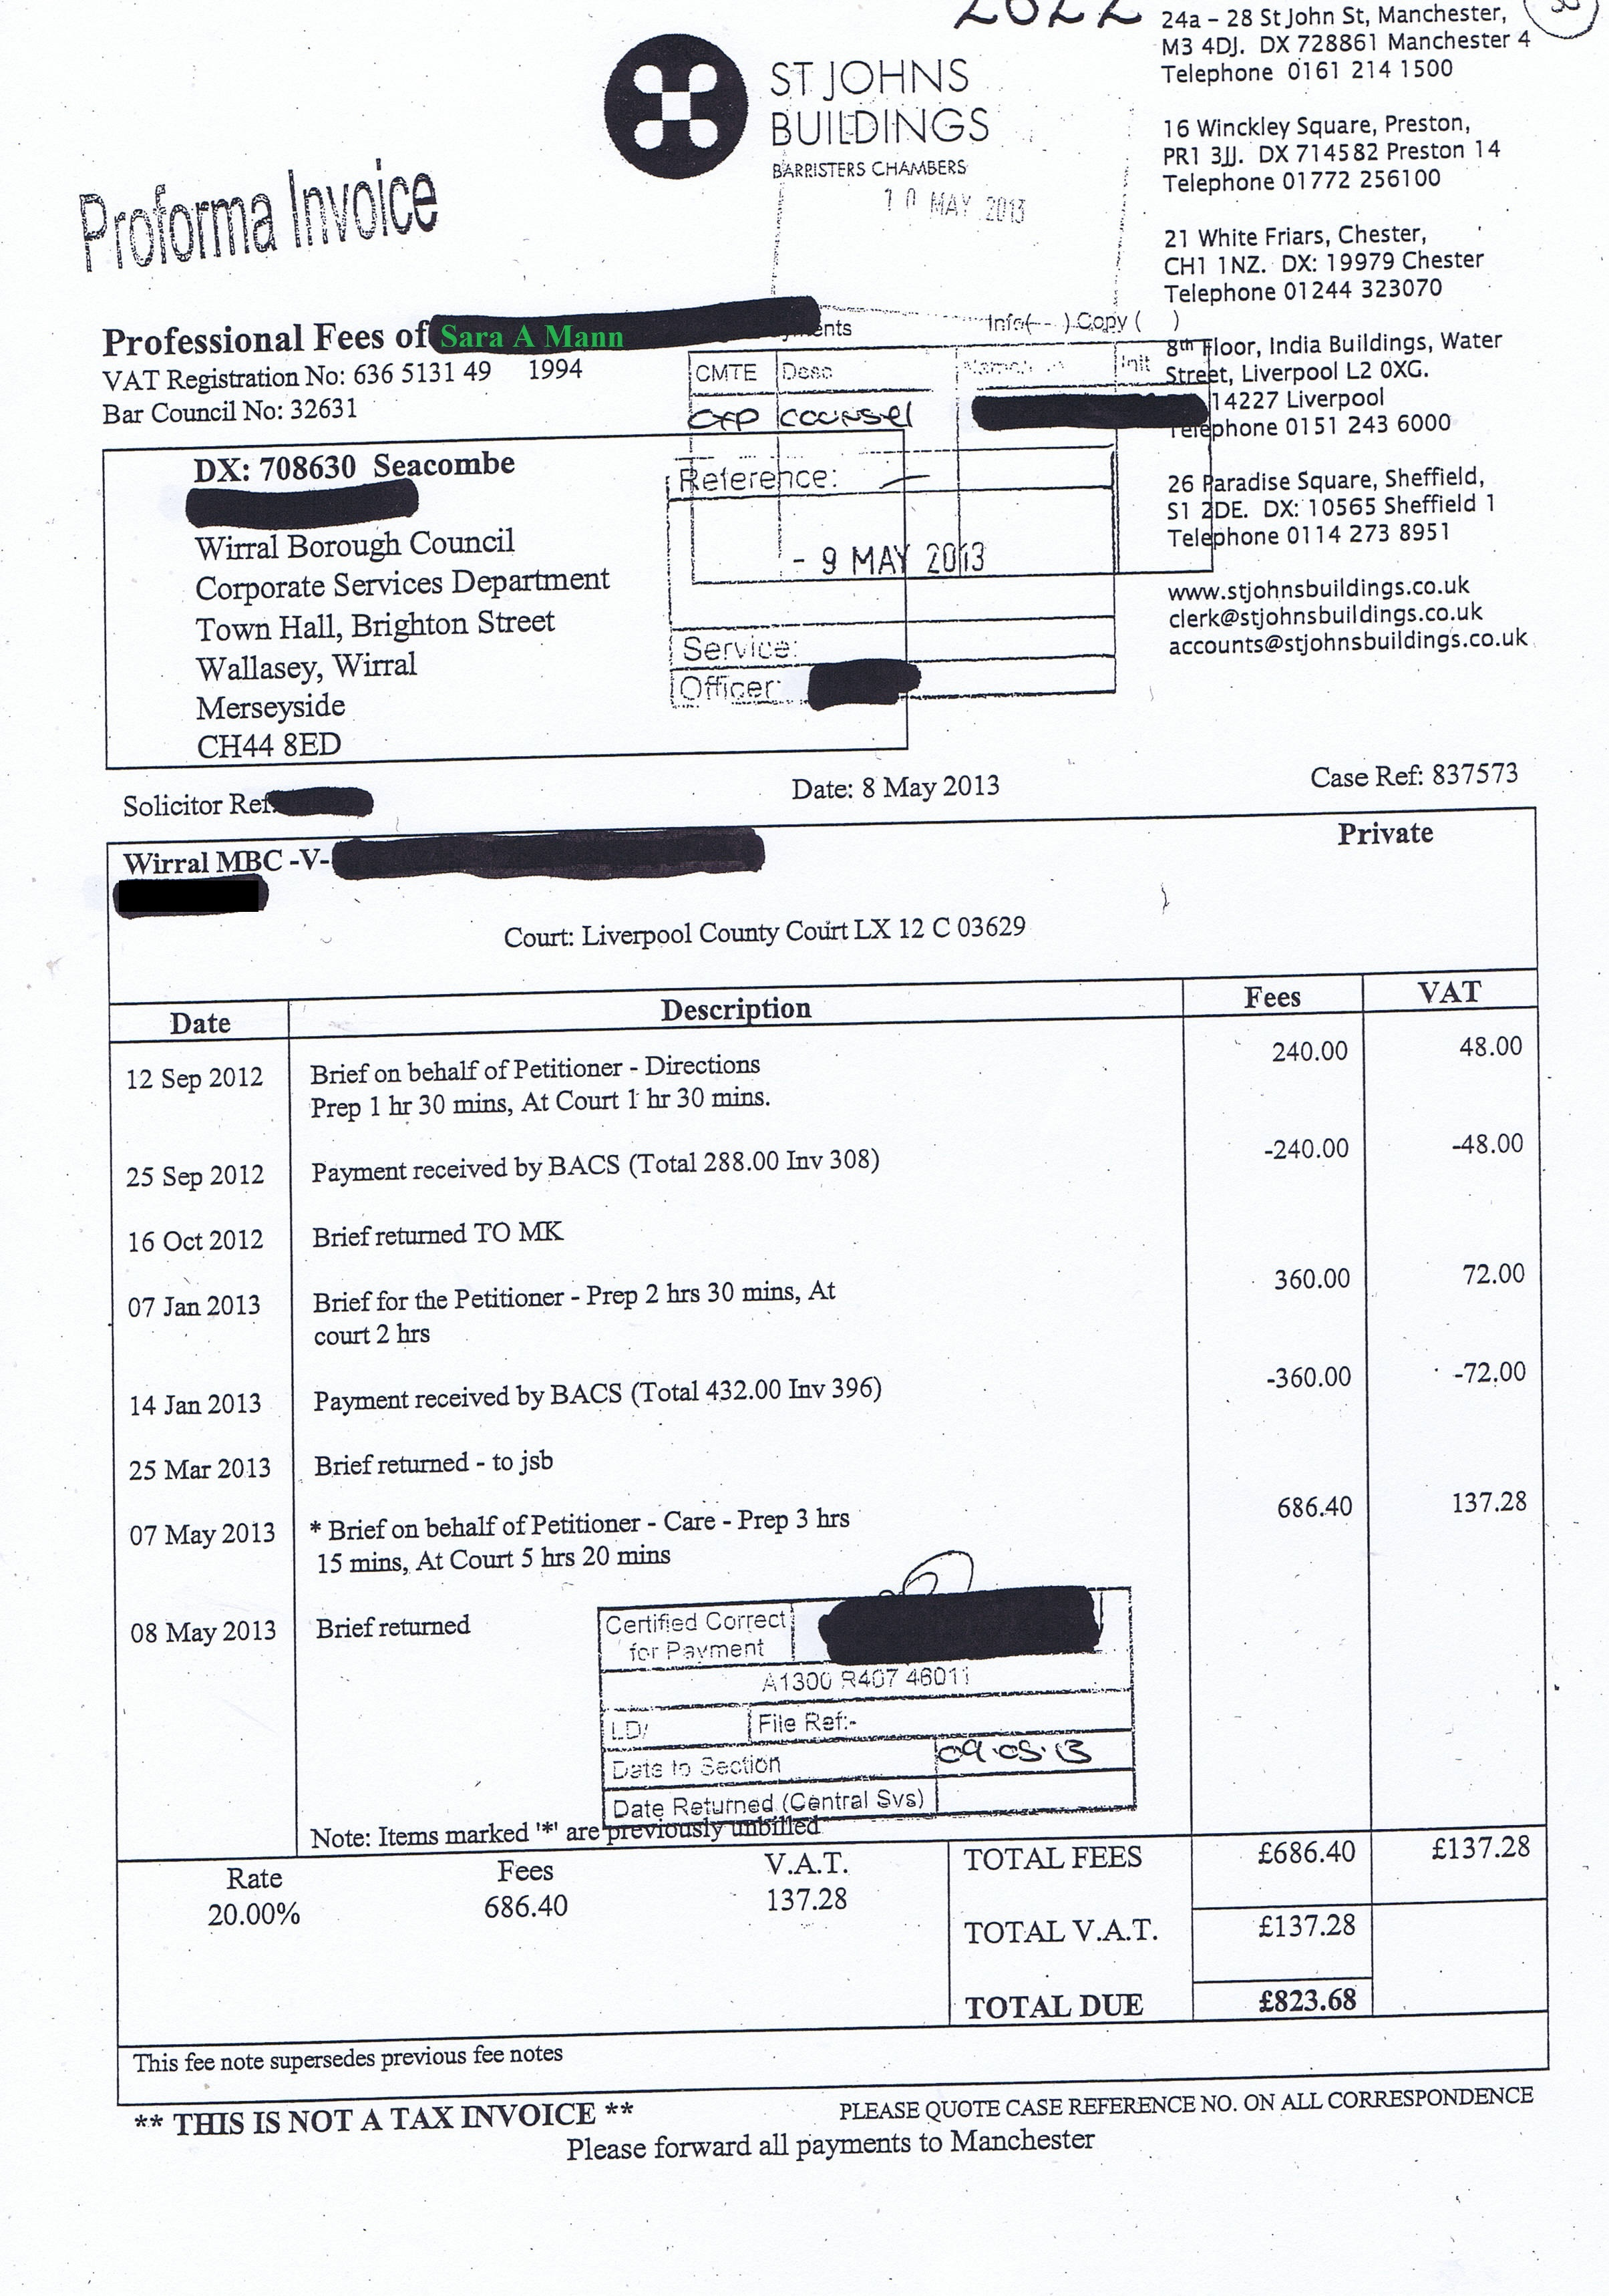 Exclusive 155 Invoices Paid By Wirral Council In 14 For Legal Services External Audit